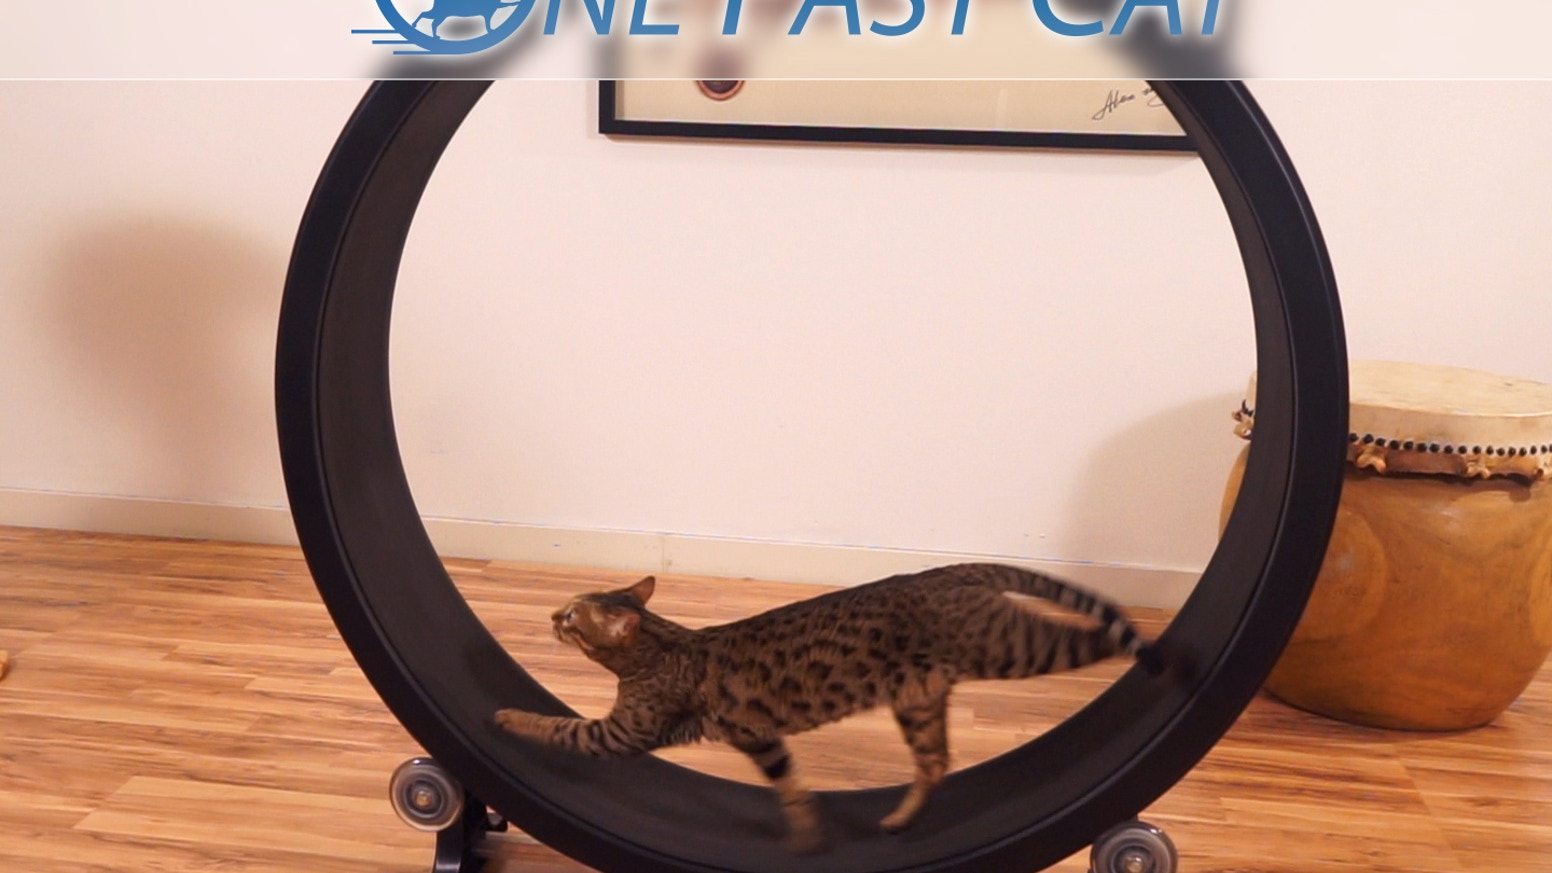 House cats possess a natural hunting instinct, and this product helps them expend that pent up energy. It's an exercise wheel for cats! Now that this project has been funded, you may order a wheel from http://onefastcat.com